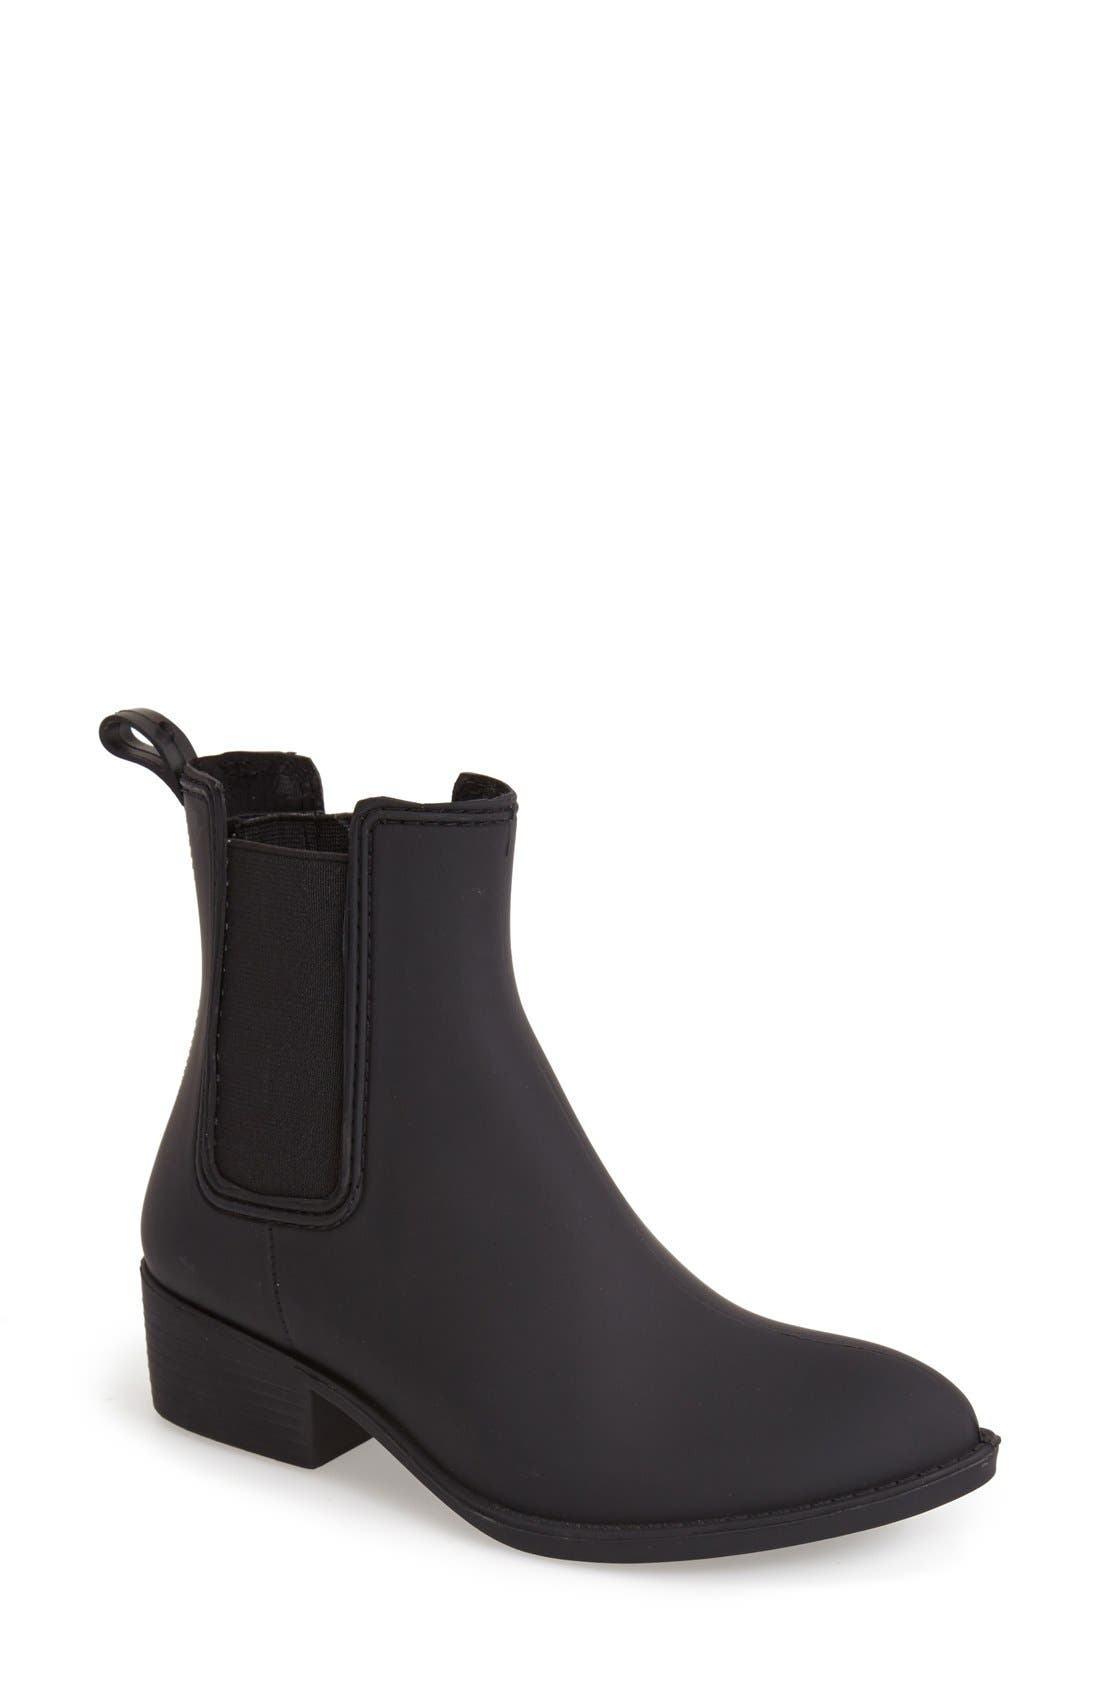 Main Image - Jeffrey Campbell 'Stormy' Rain Boot (Women)